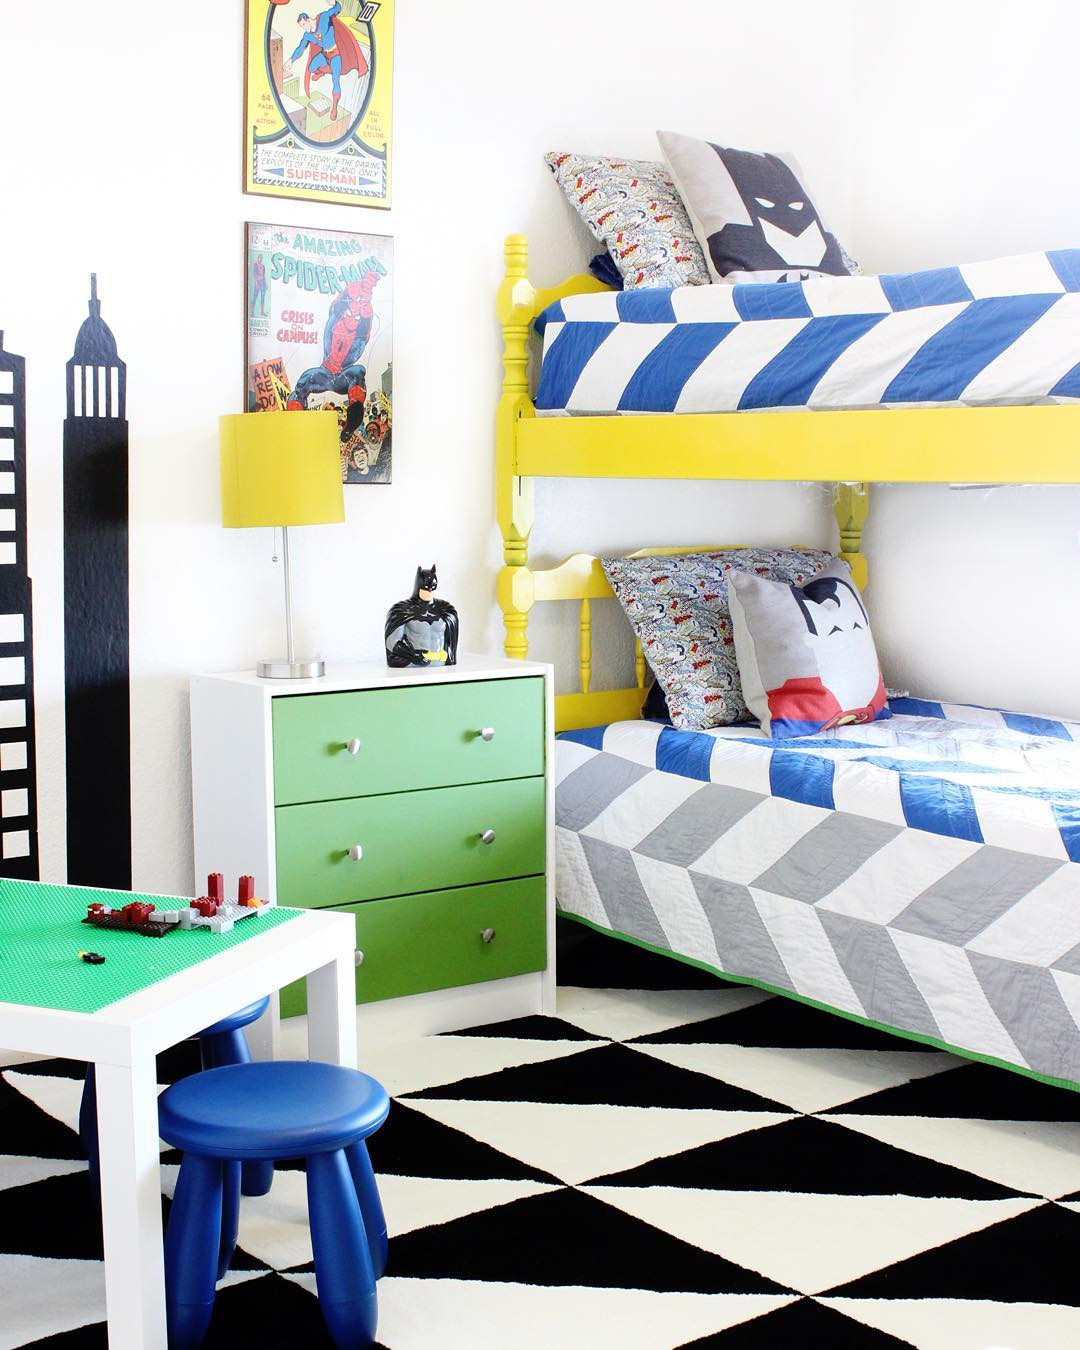 Since we've moved, I revamped the superhero room and my kids are loving it! Don't worry, the top bunk has a rail, I took it off for pictures! #safetyfirst Check out the full reveal on the blog today! #superhero #decorforkids #abmathome #abmlifeiscolorful #acolorstory